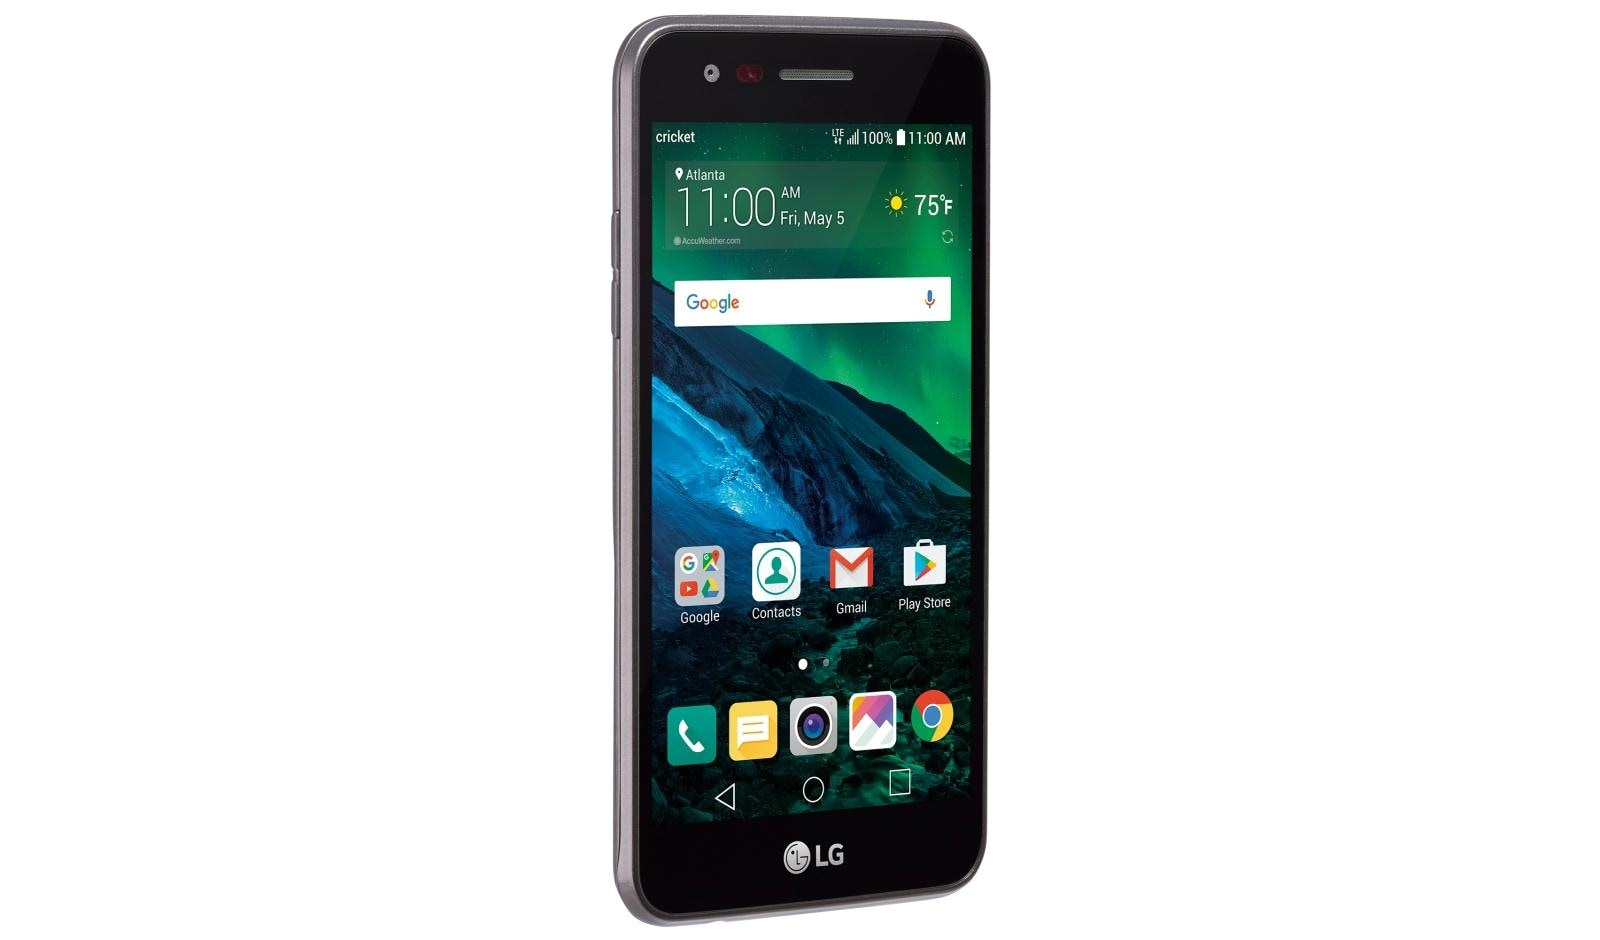 Lg Fortune Smartphone For Cricket In Black Waterproof Mobile Phone Circuit Boards